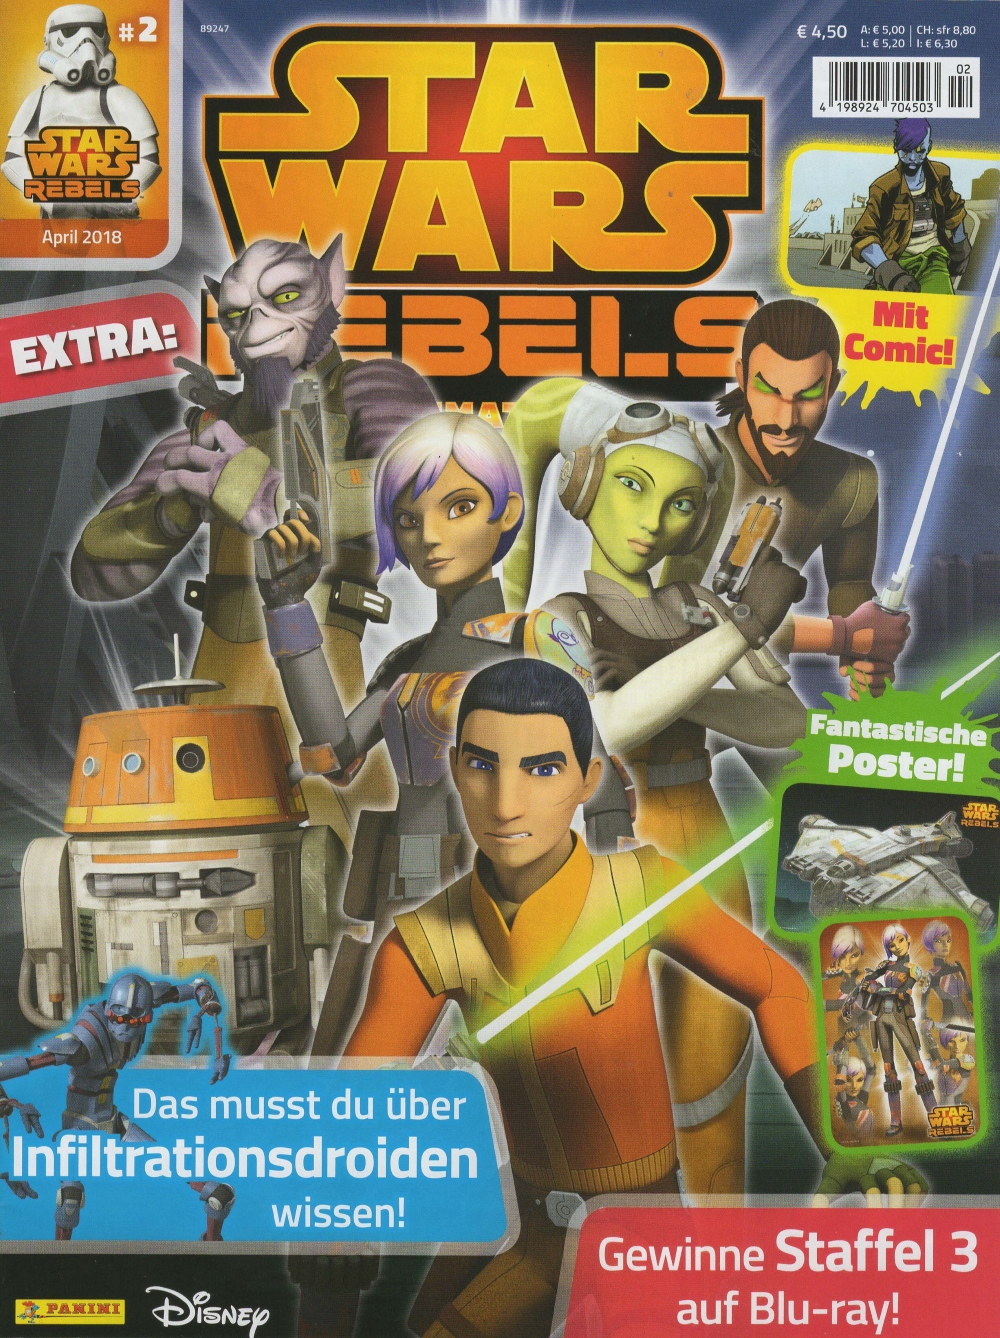 Star Wars Rebels Animation 2